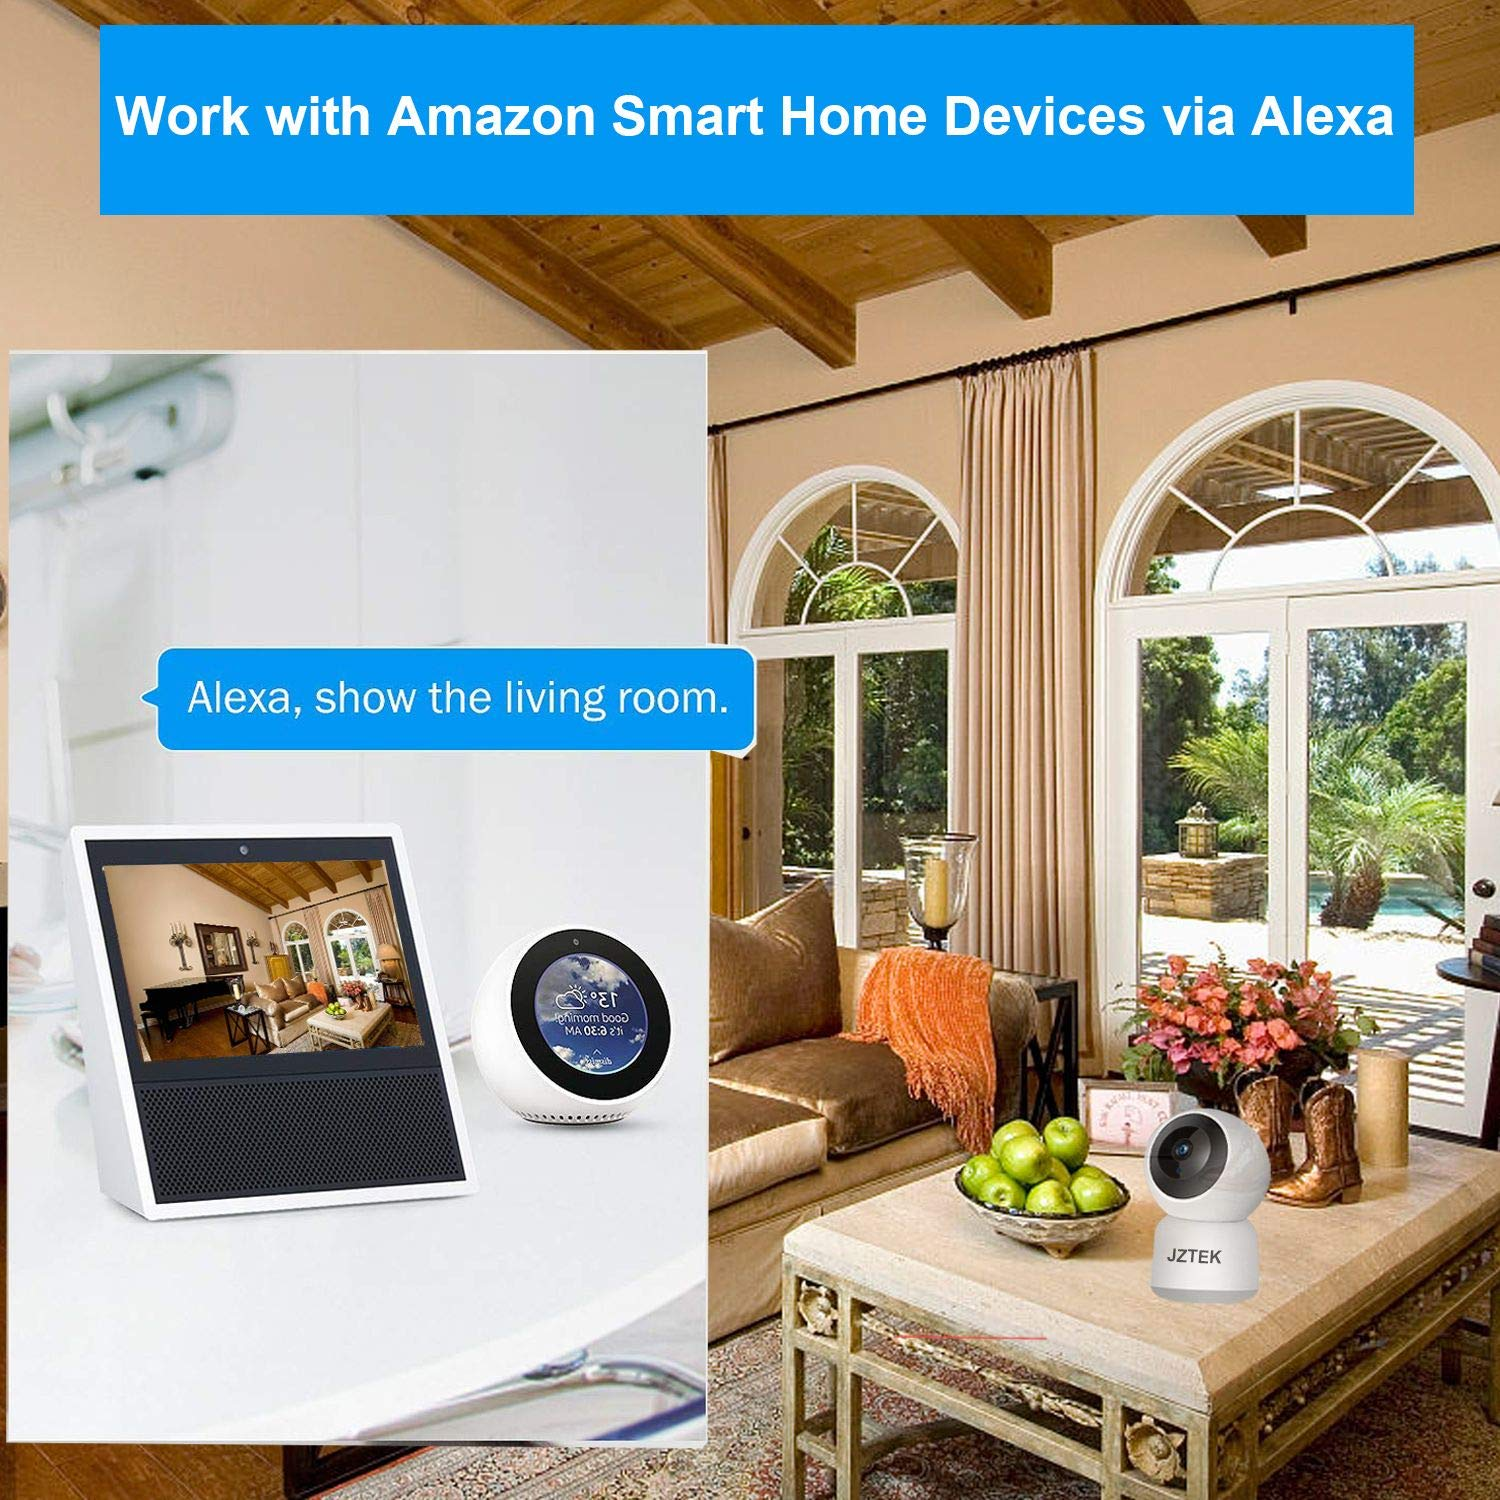 WiFi Dog IP Camera 1080P, JZTEK Smart Wireless Cam Pan/Tilt/Zoom with Cloud Service 3D Image Touch Navigation Panoramic View Night Vision, Two-Way Audio, Motion Detection for Elder,Baby,Pet by JZTEK (Image #4)